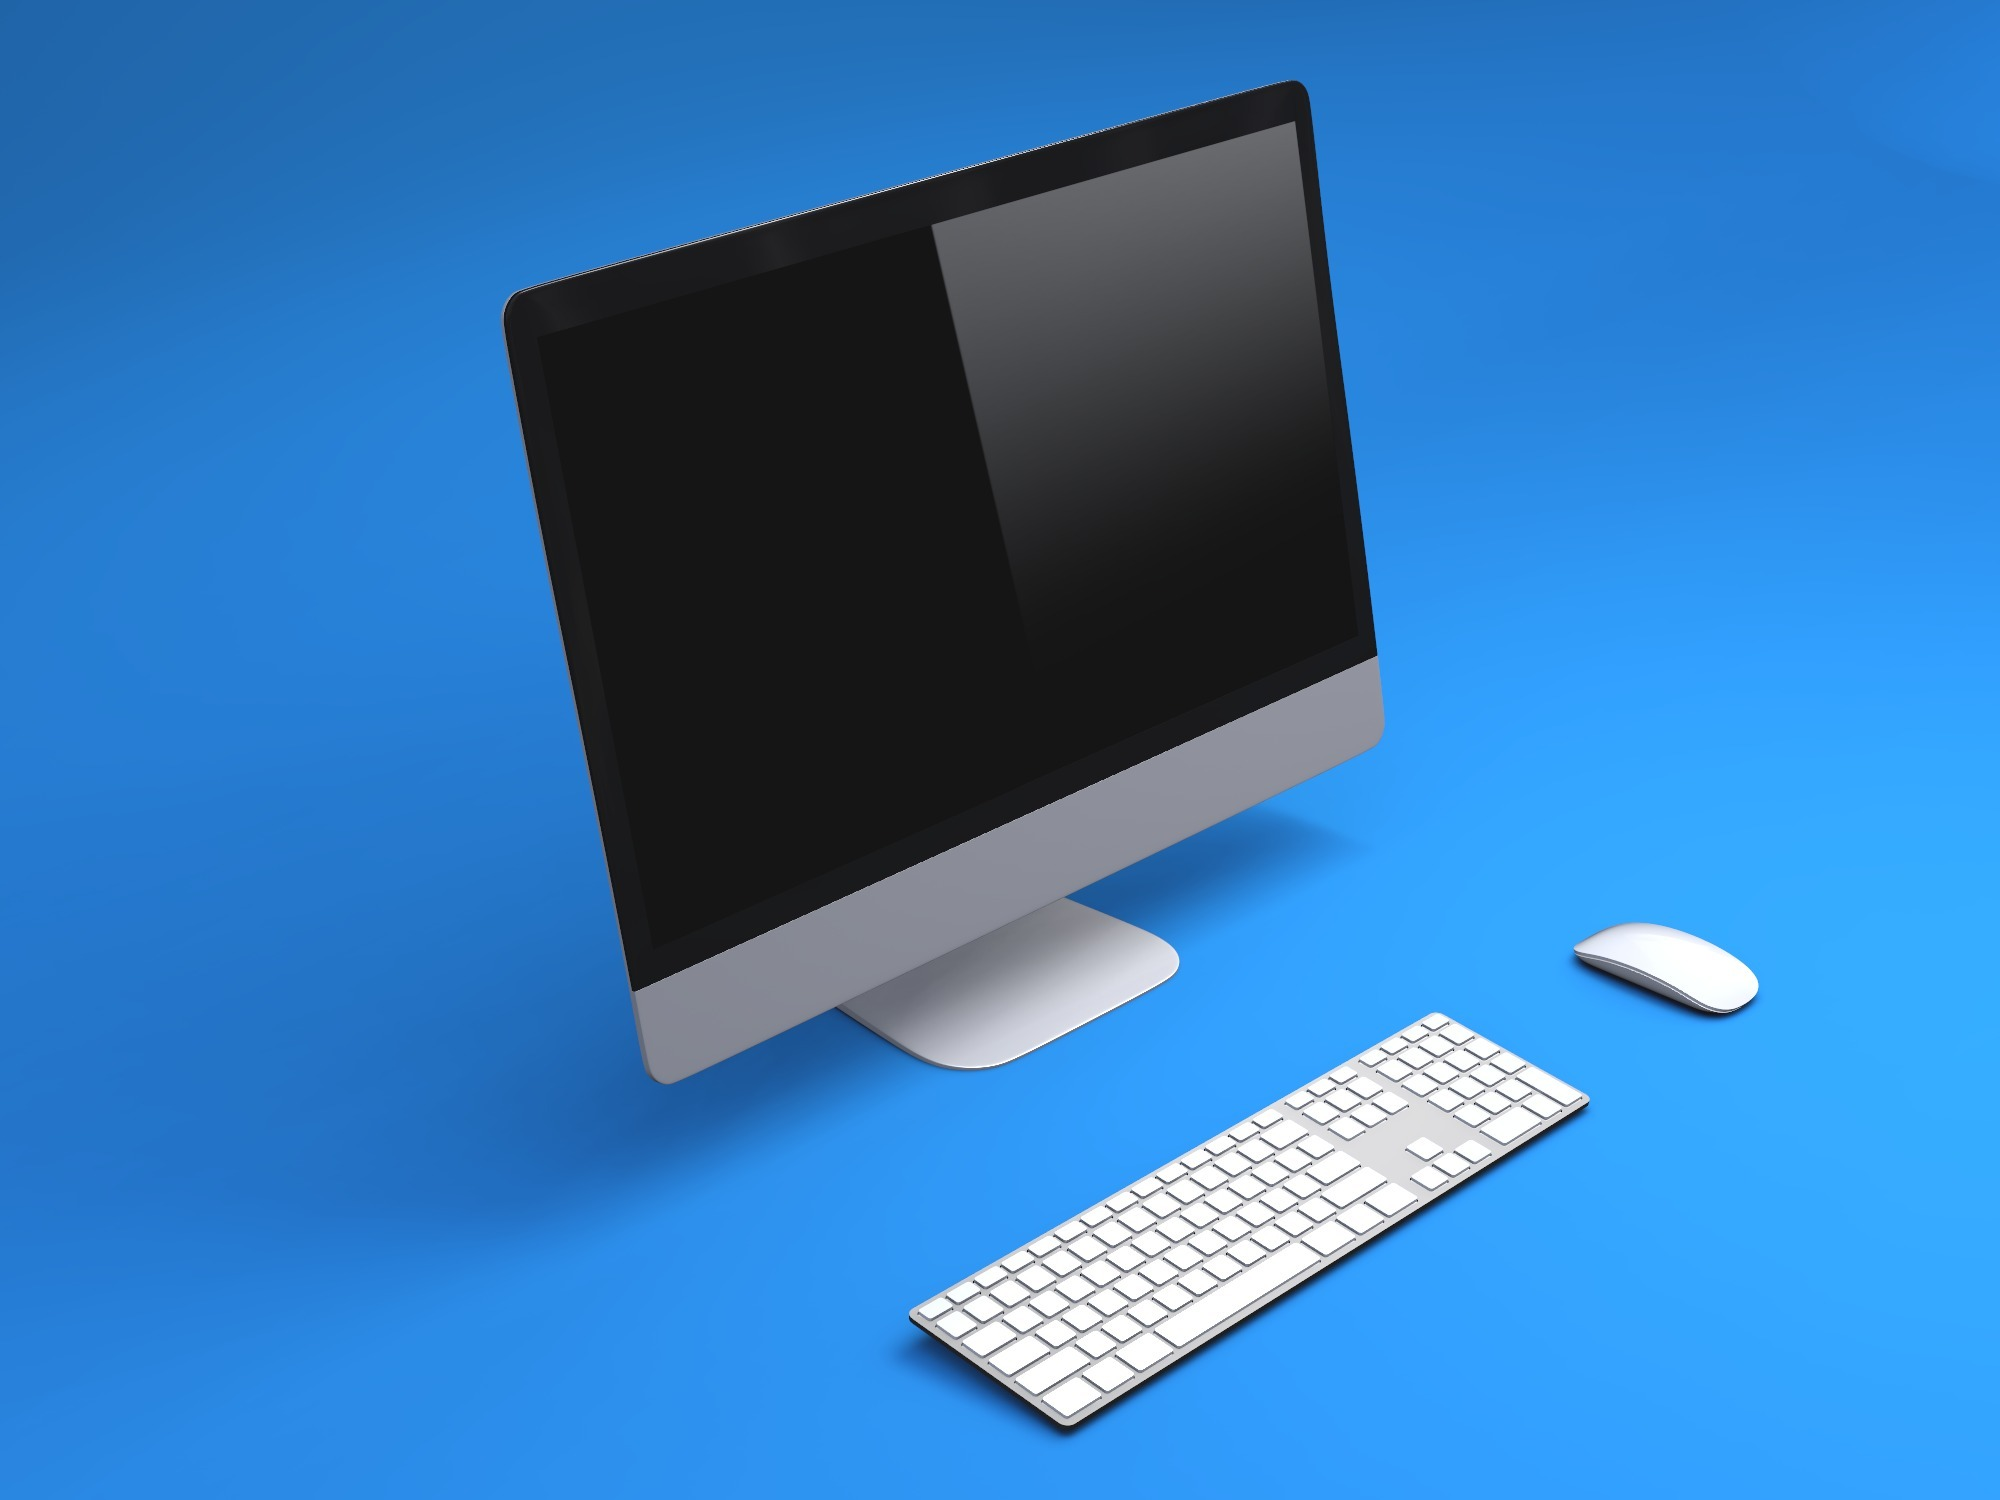 iMac with keyboard mockup - replace image - 3D design by Vectary templates on Jul 23, 2018